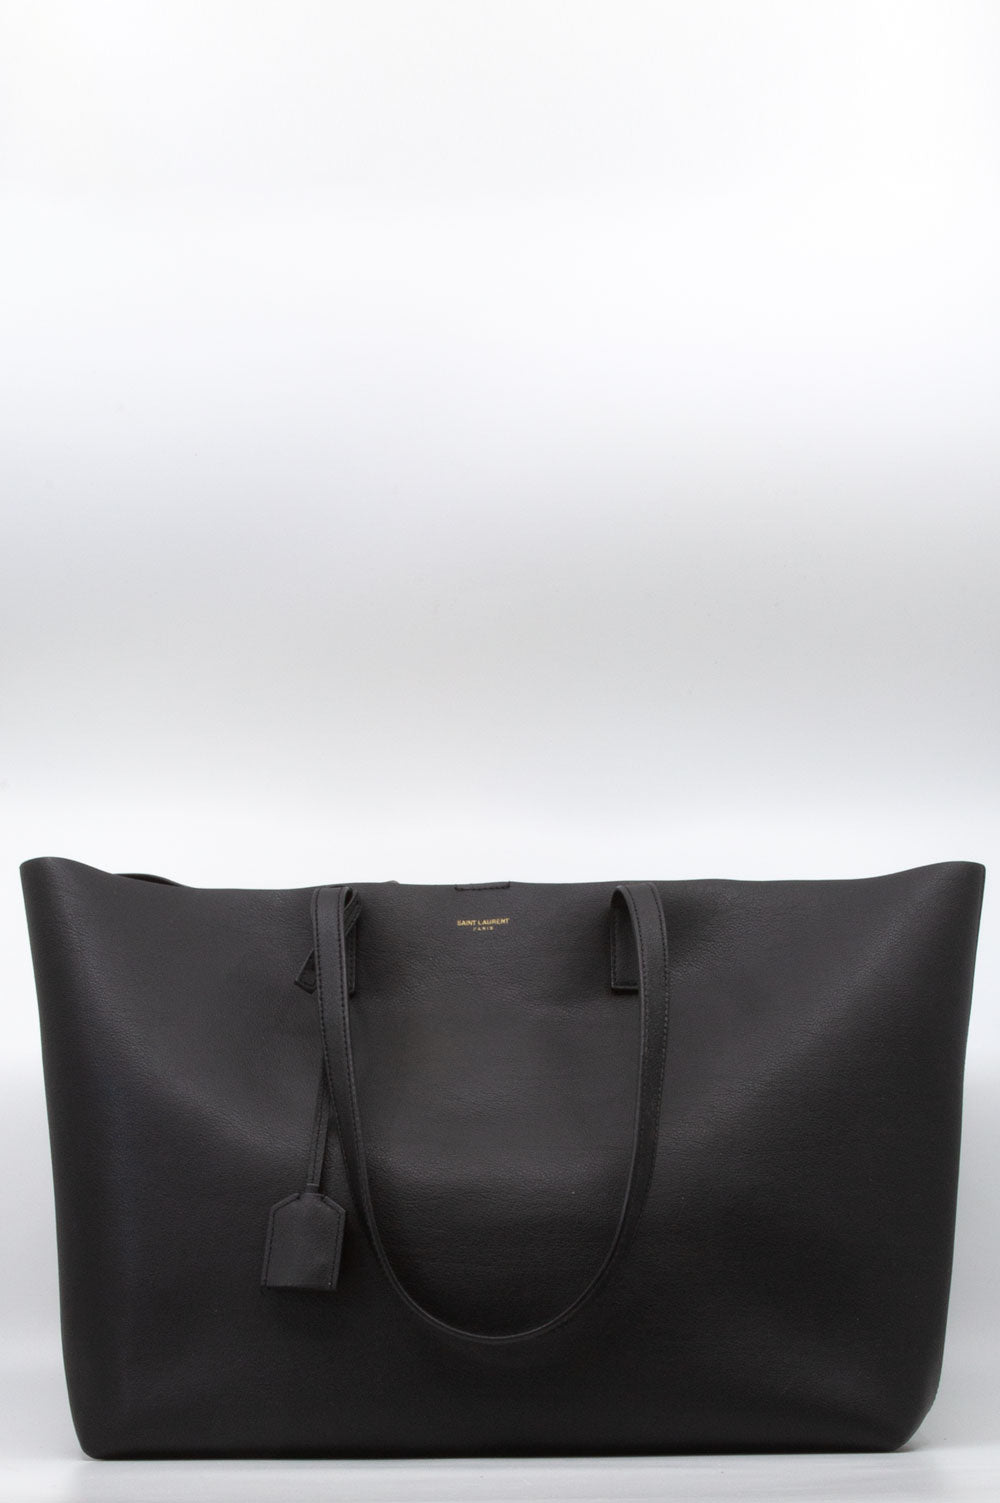 Saint Laurent East West Shopper in Schwarz.